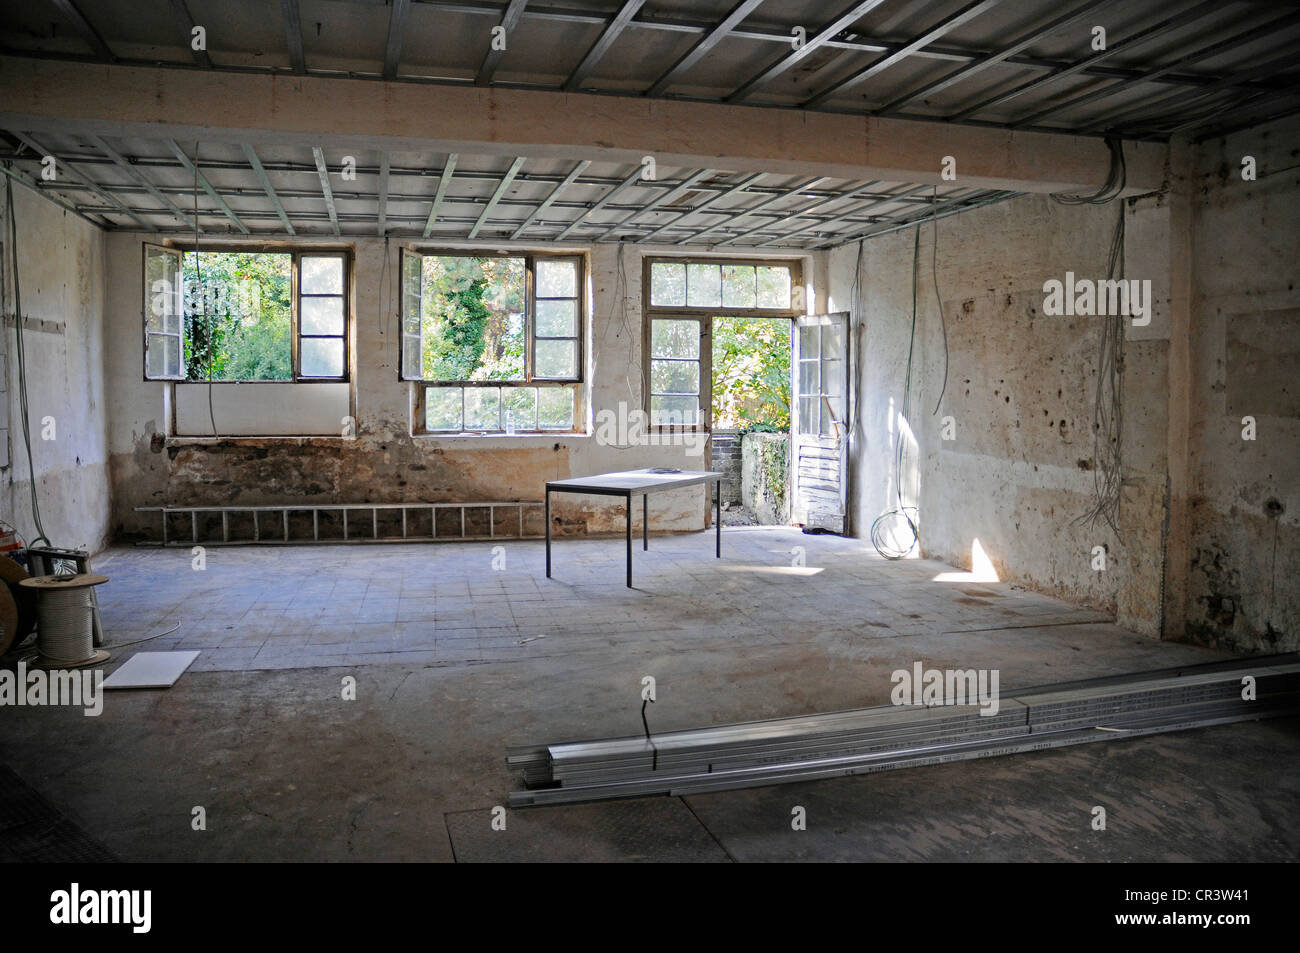 Windows, ceiling, old building, redevelopment, housing, house building, construction site, North Rhine-Westphalia - Stock Image